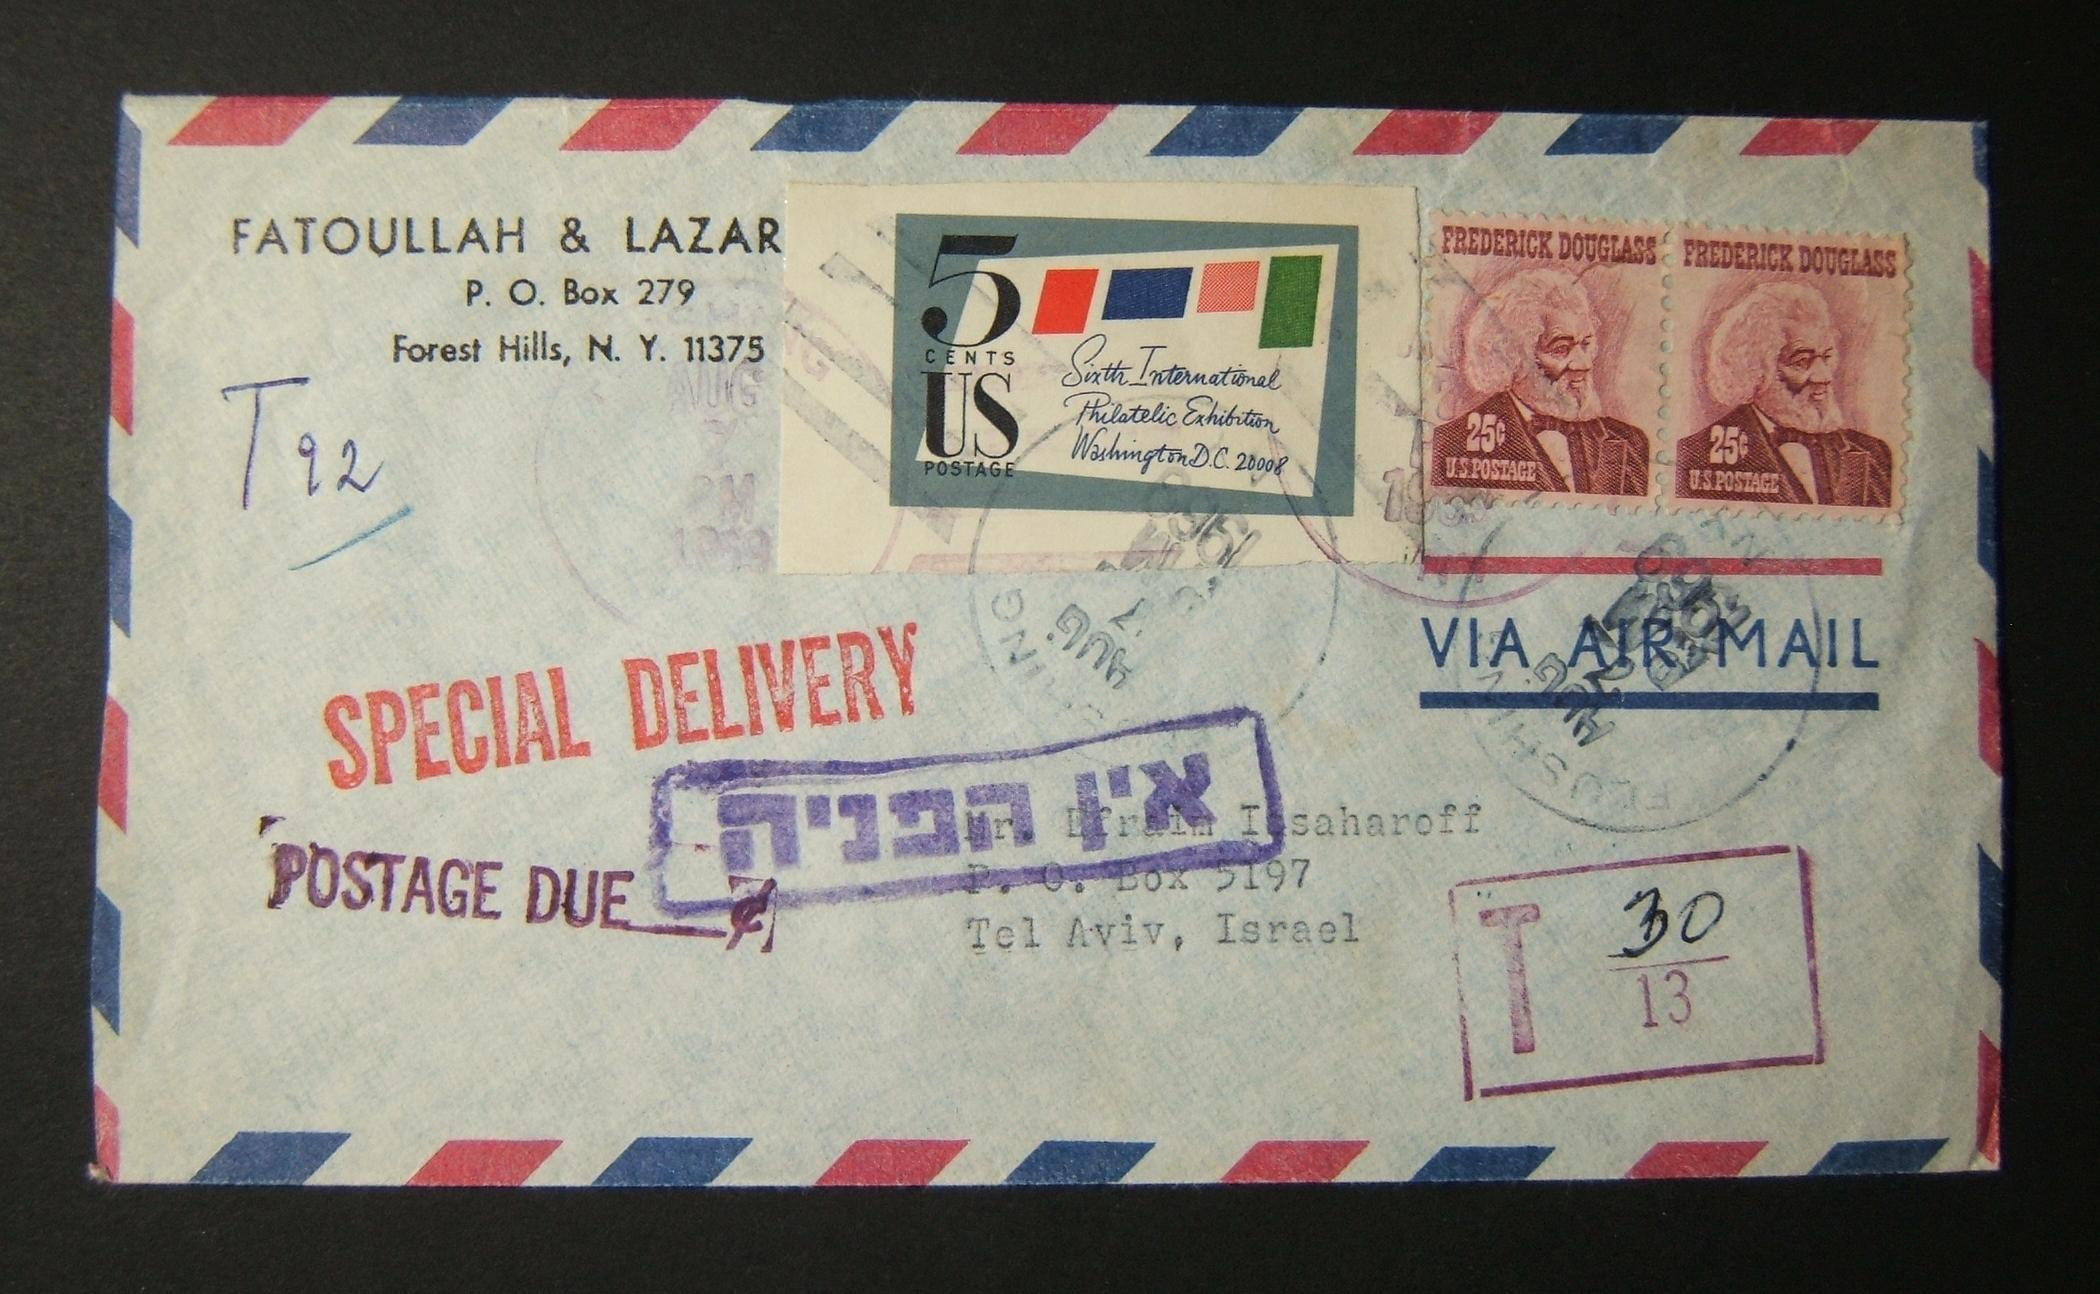 1969 incoming US postage due mail: AUG 7 1969 airmail cover ex FLUSHING to TLV underfranked at 55c (partially using event postage label) and manuscript marked for 92 Agora tax, pai